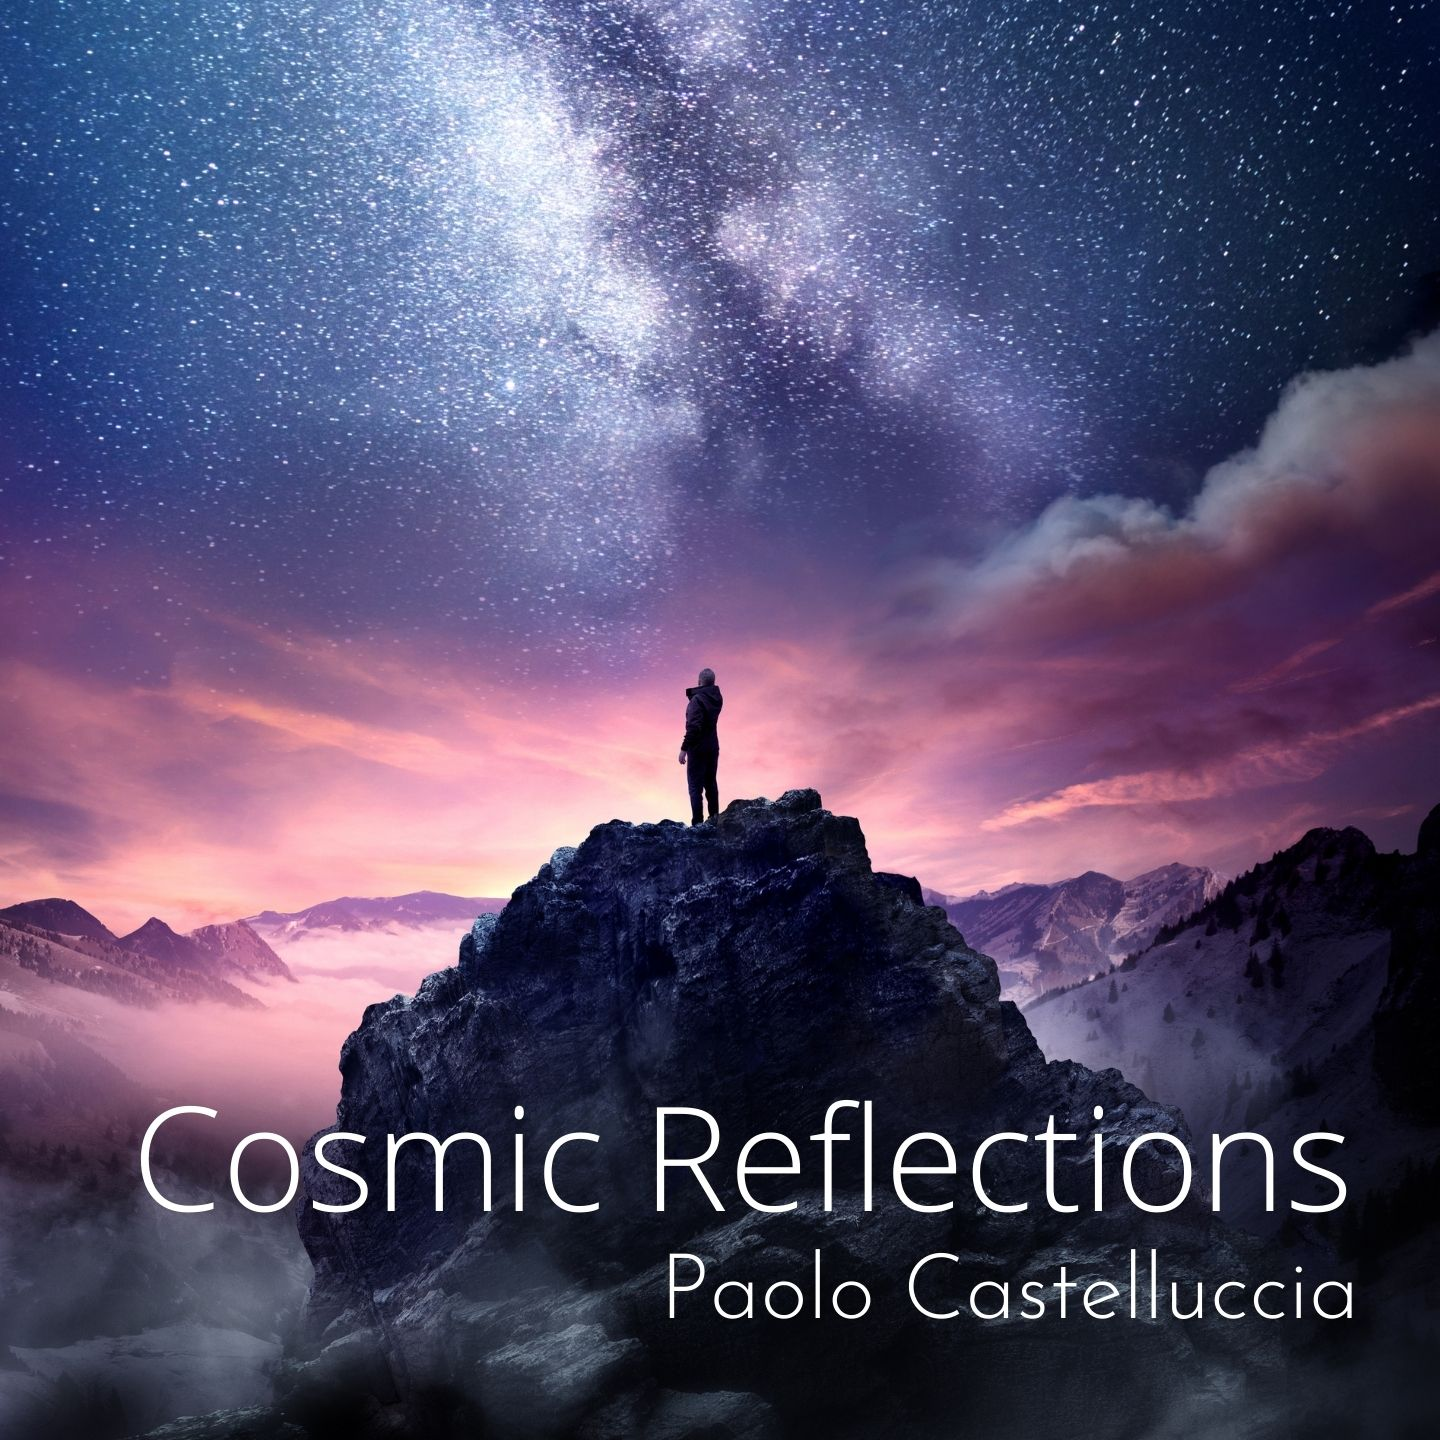 Cosmic Reflections